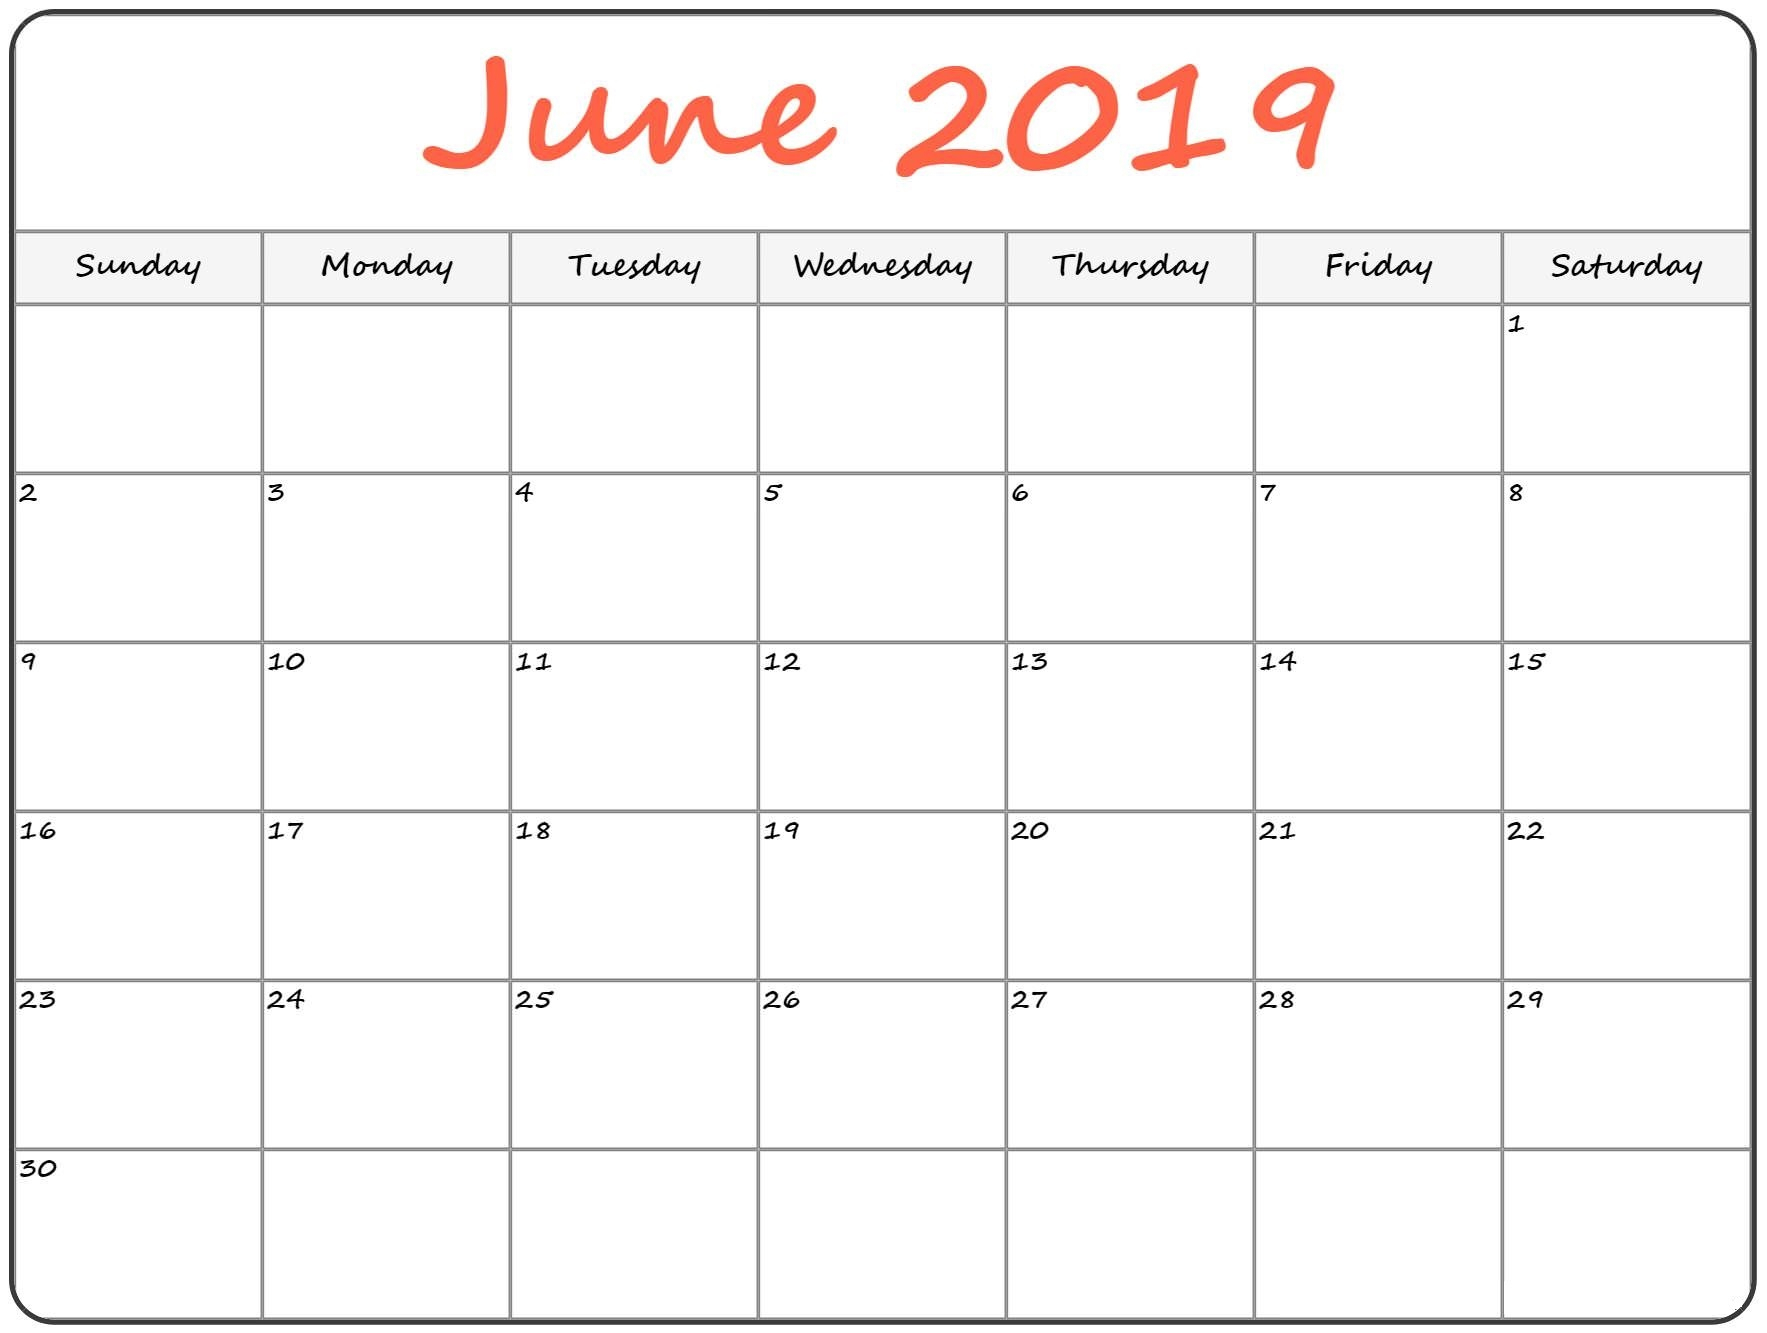 Printable June 2019 Calendarmonth - Free Printable Calendar pertaining to Pretty Monthly Calendar Template July